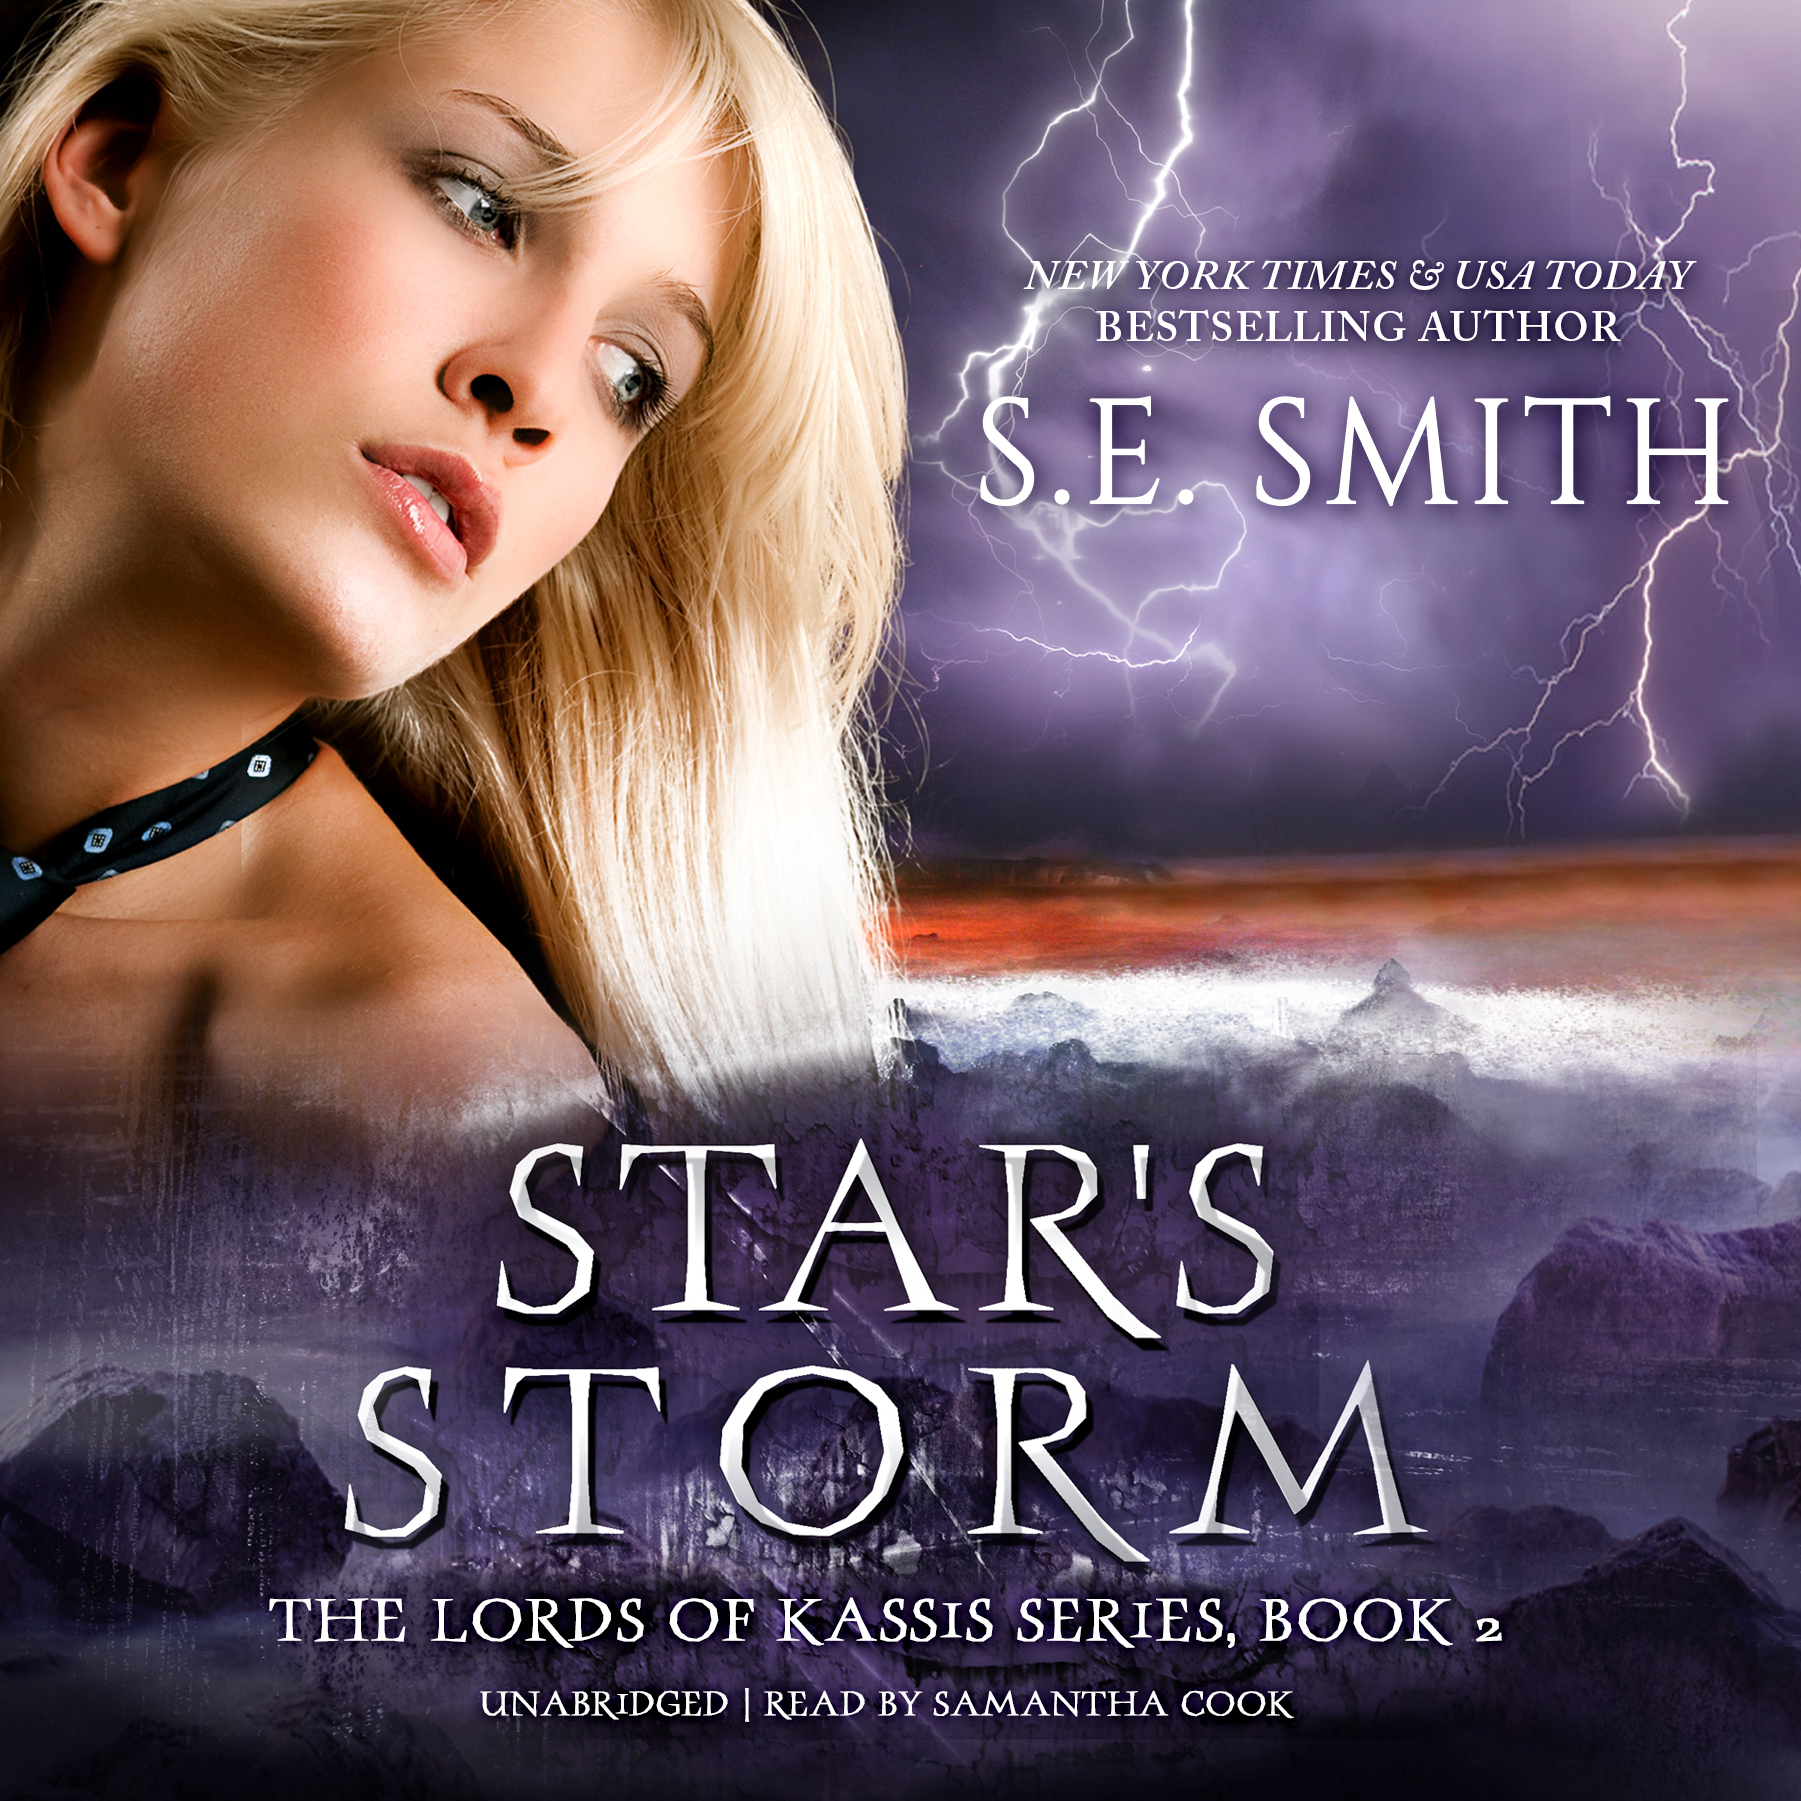 Printable Star's Storm Audiobook Cover Art